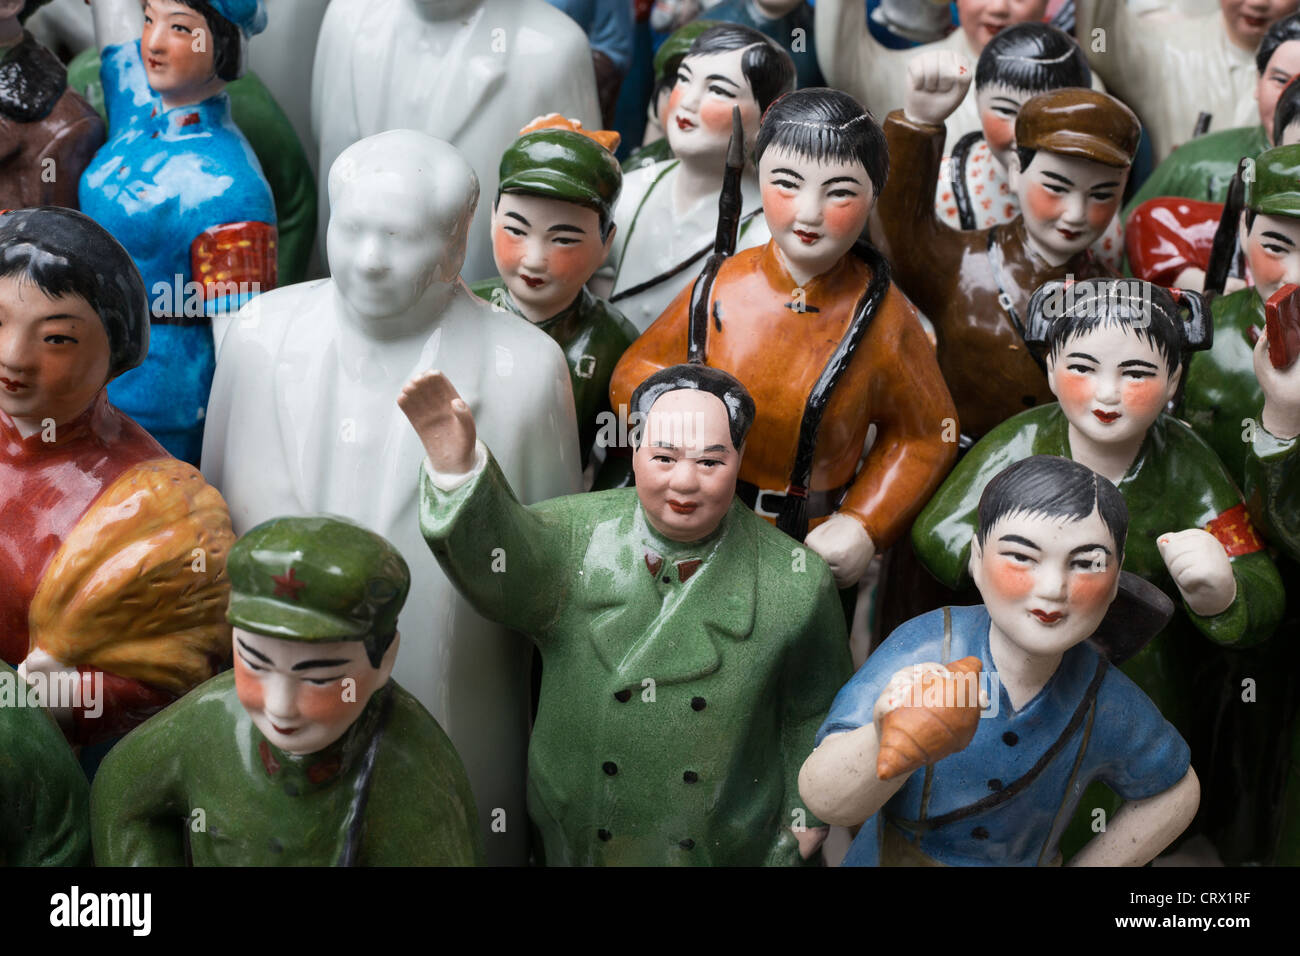 Chairman Mao memorabilia on sale in Dongtai Road Antique Market in Shanghai, China. Stock Photo